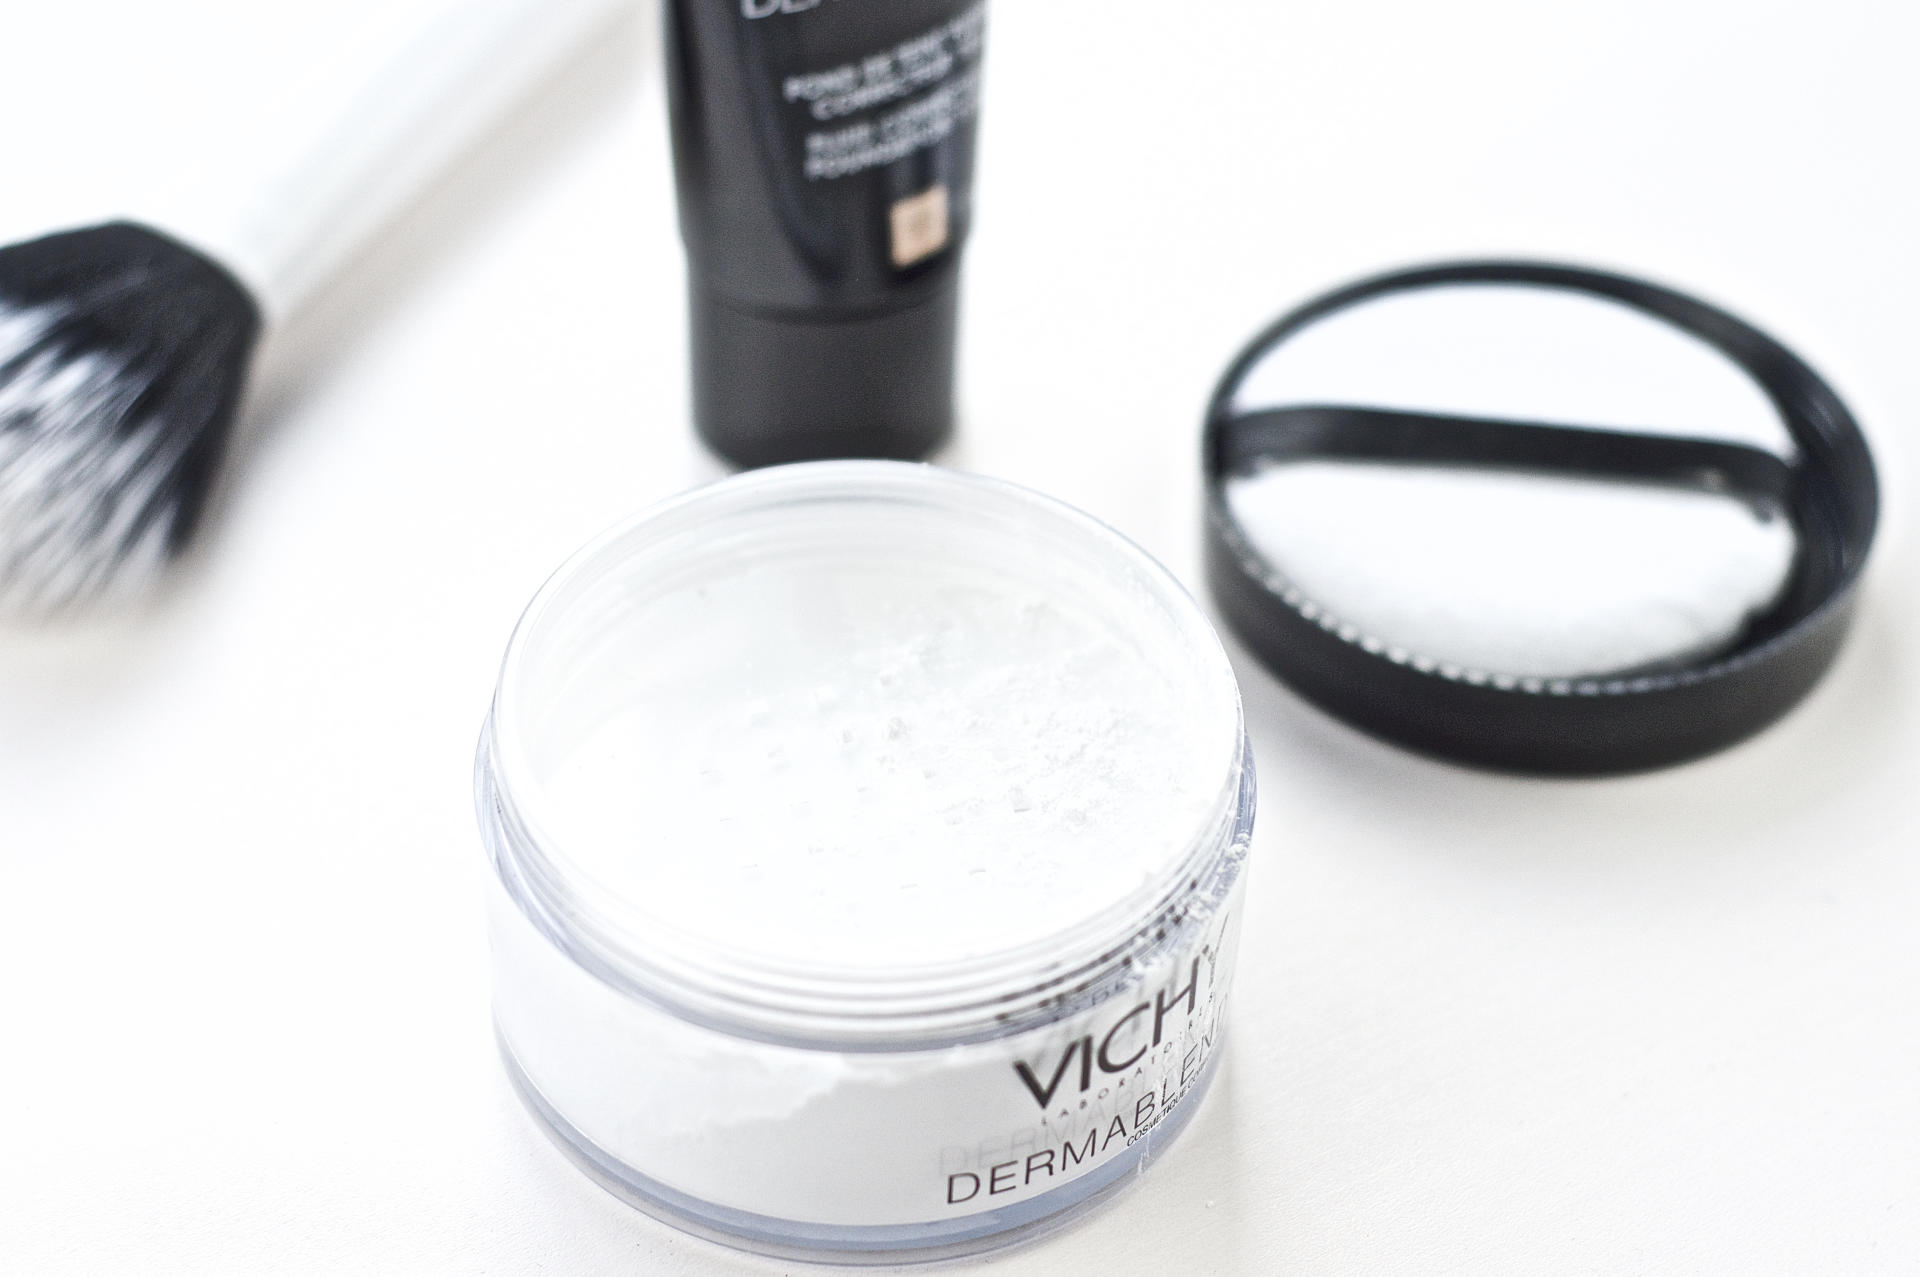 Made From Beauty Vichy Dermablend Setting Powder